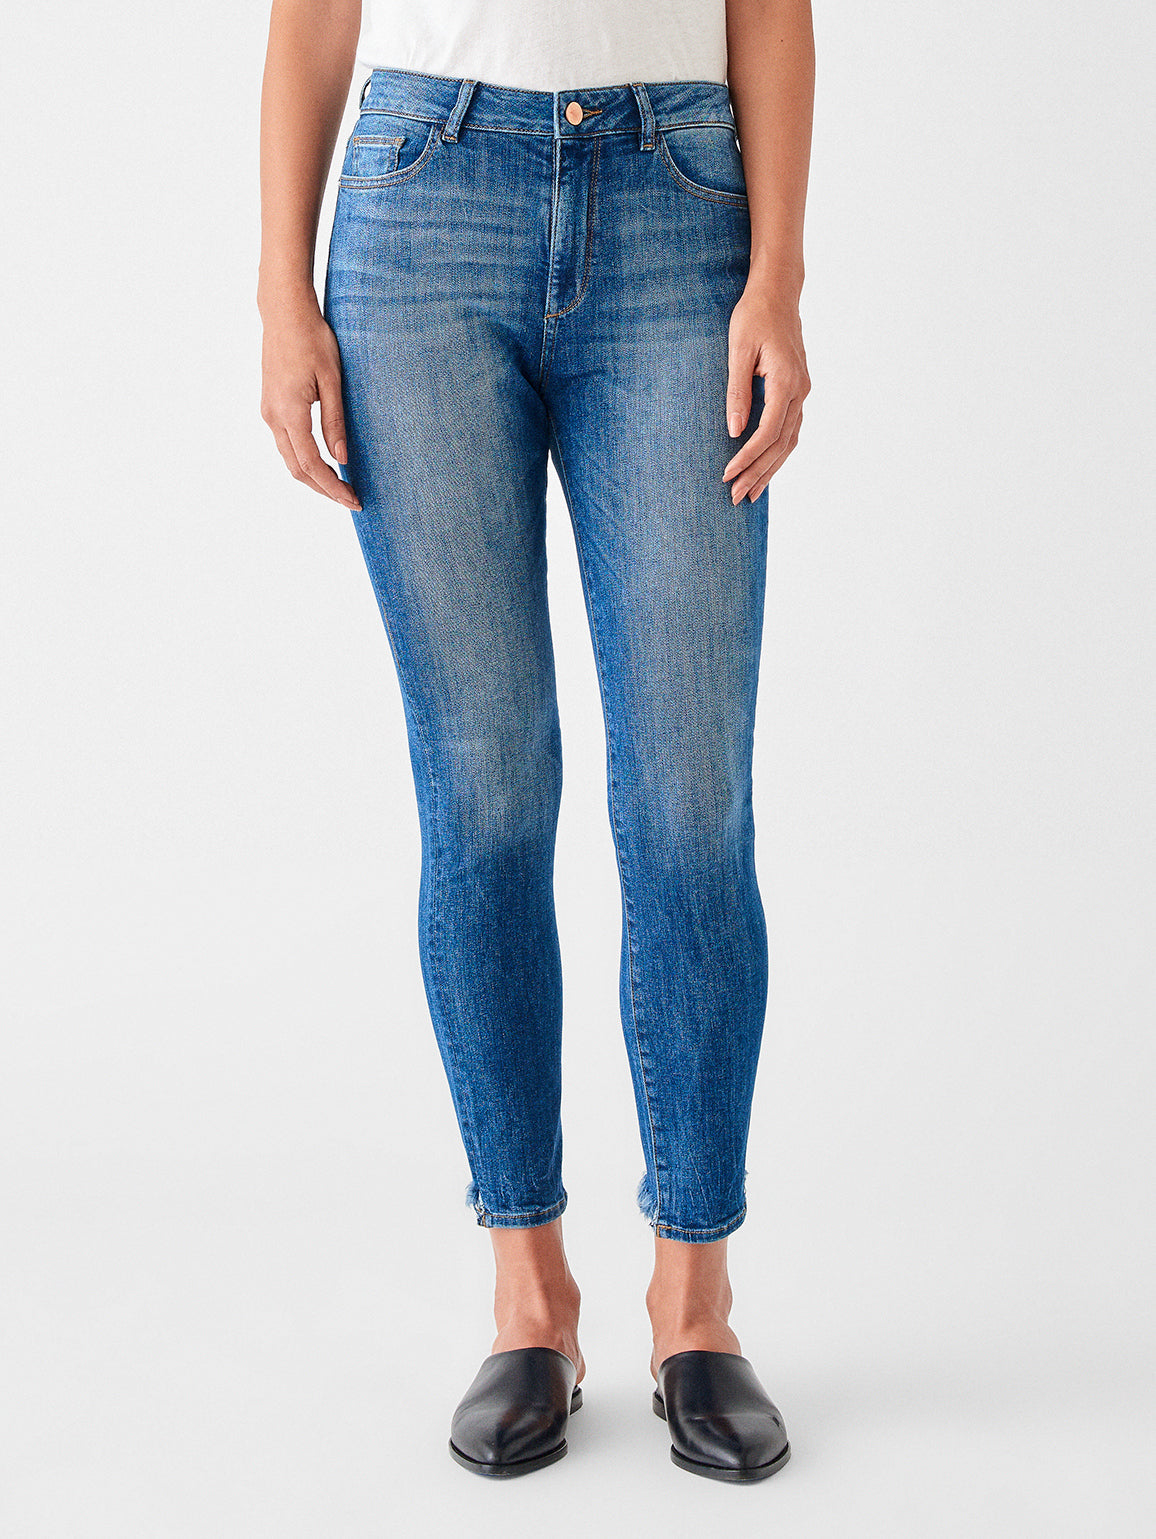 Image of DL1961 Farrow Skinny Jeans